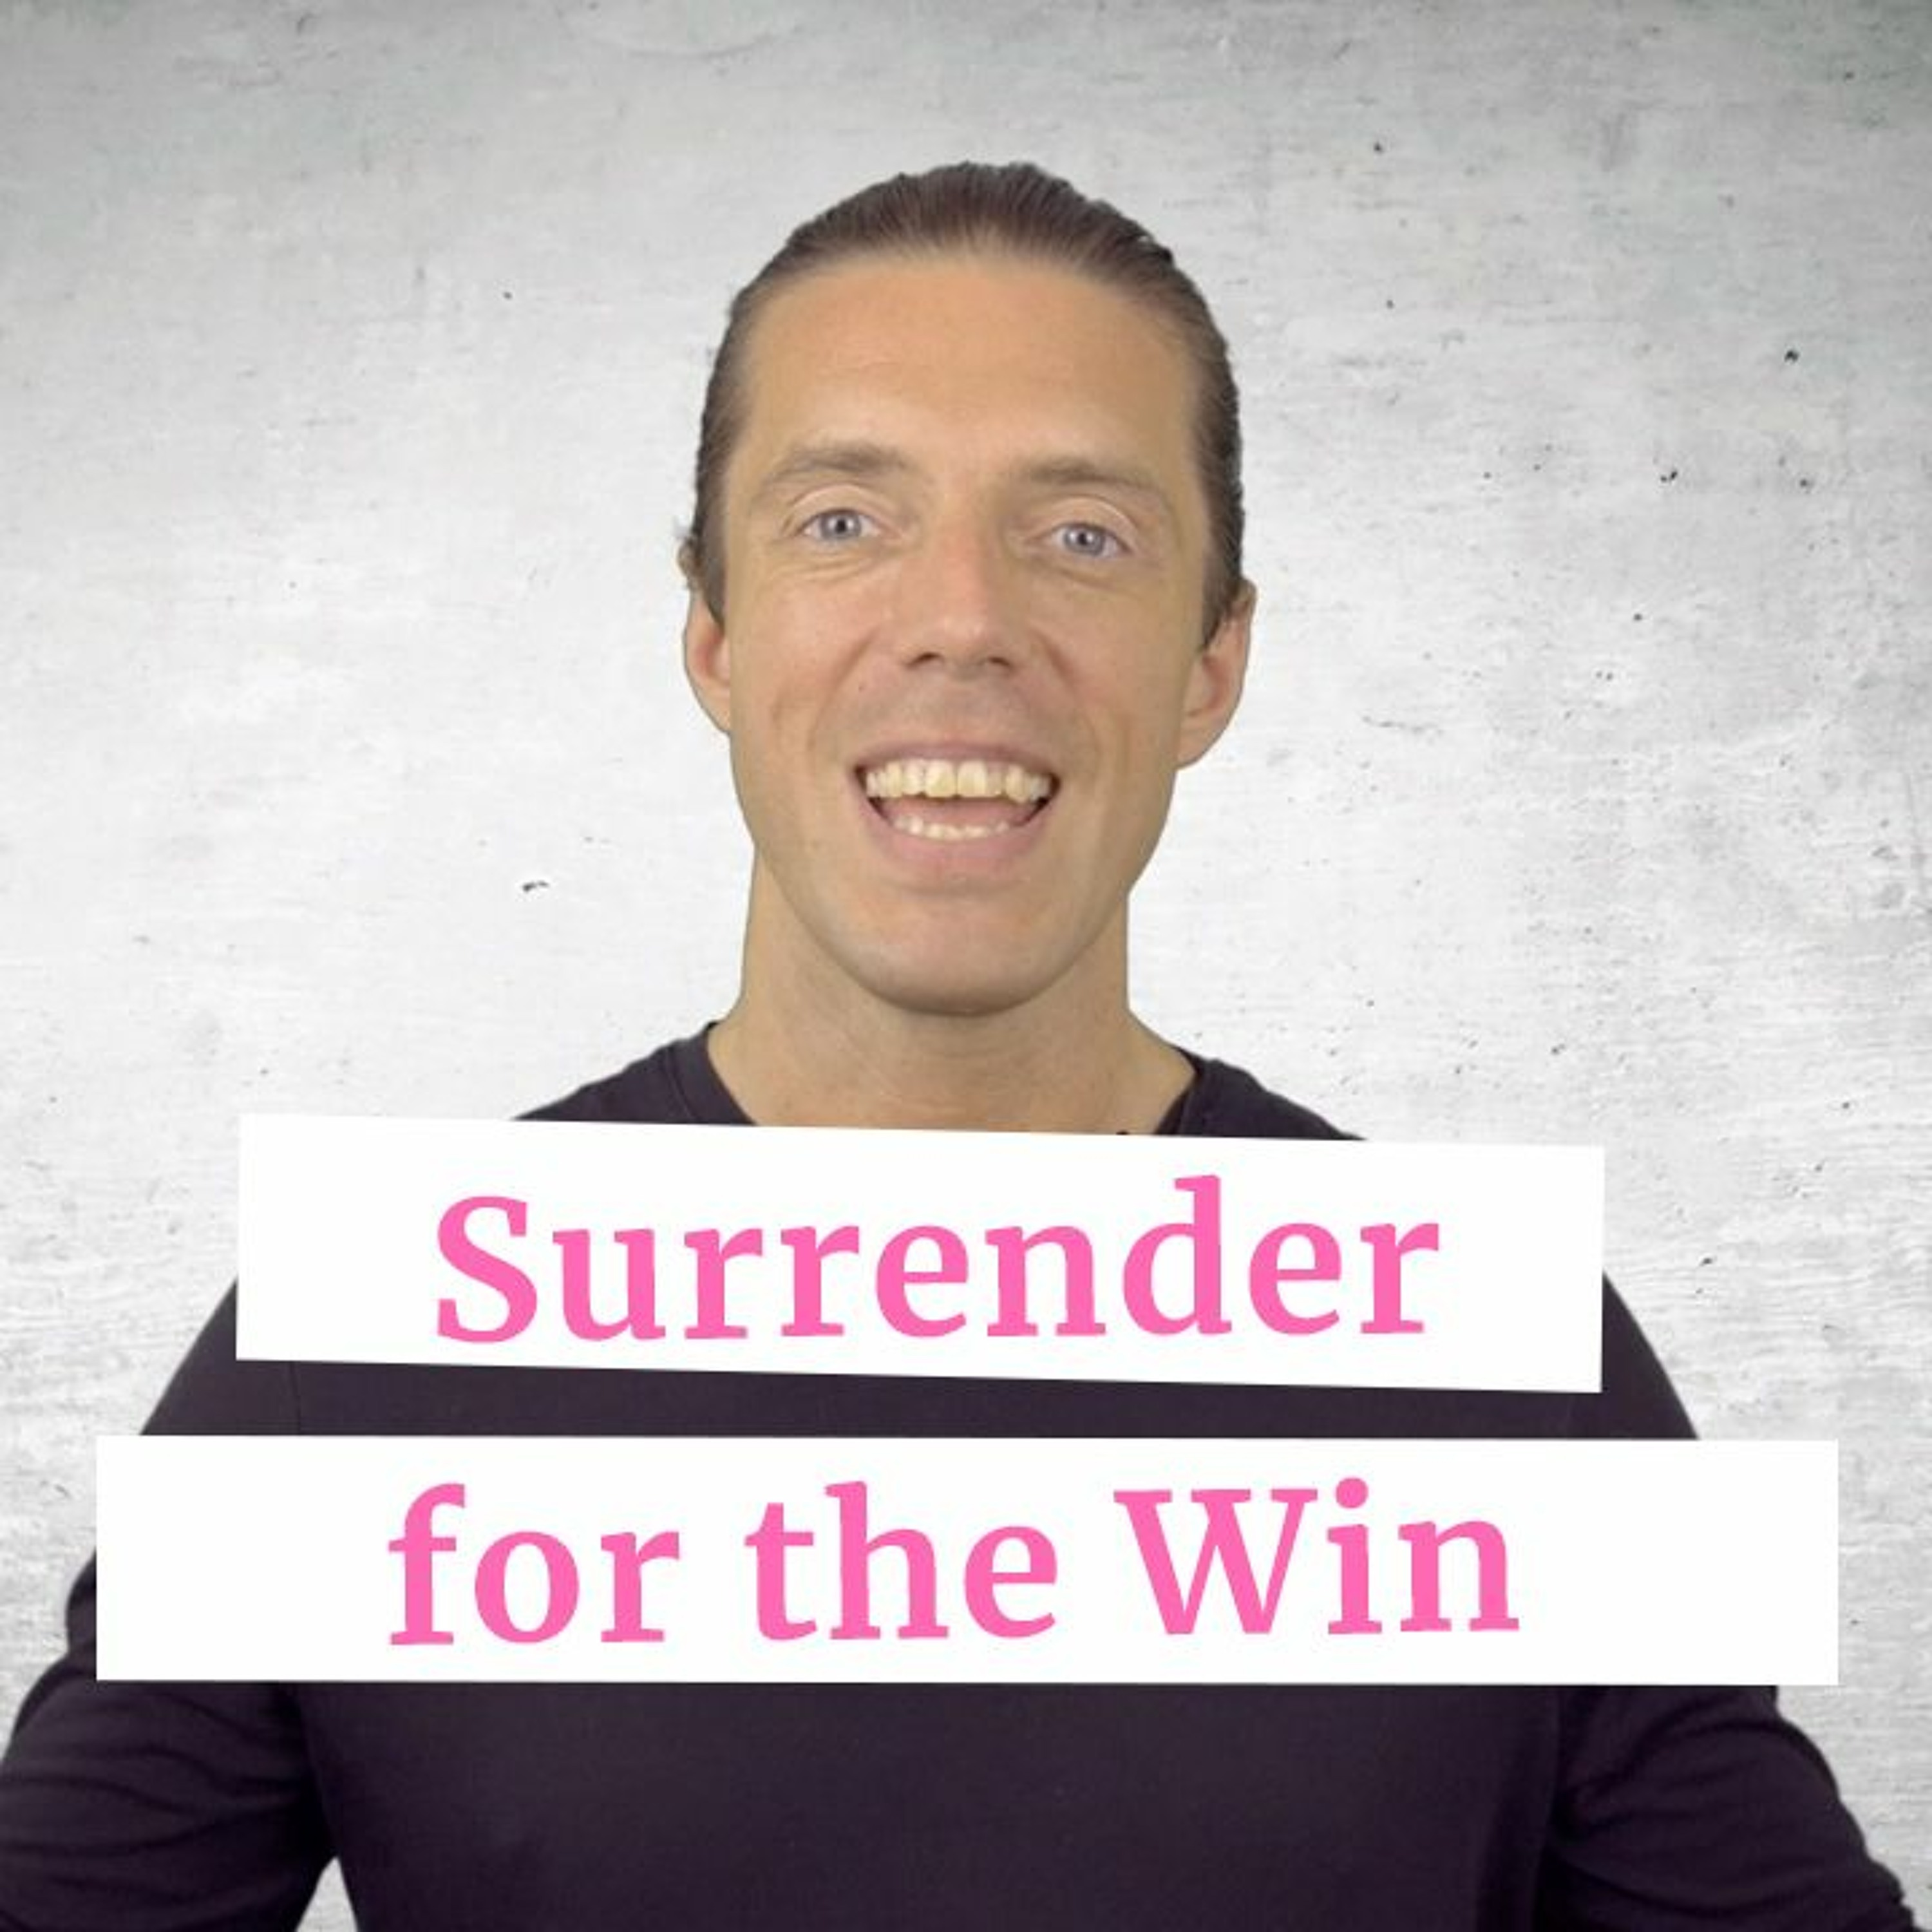 Surrender for the Win